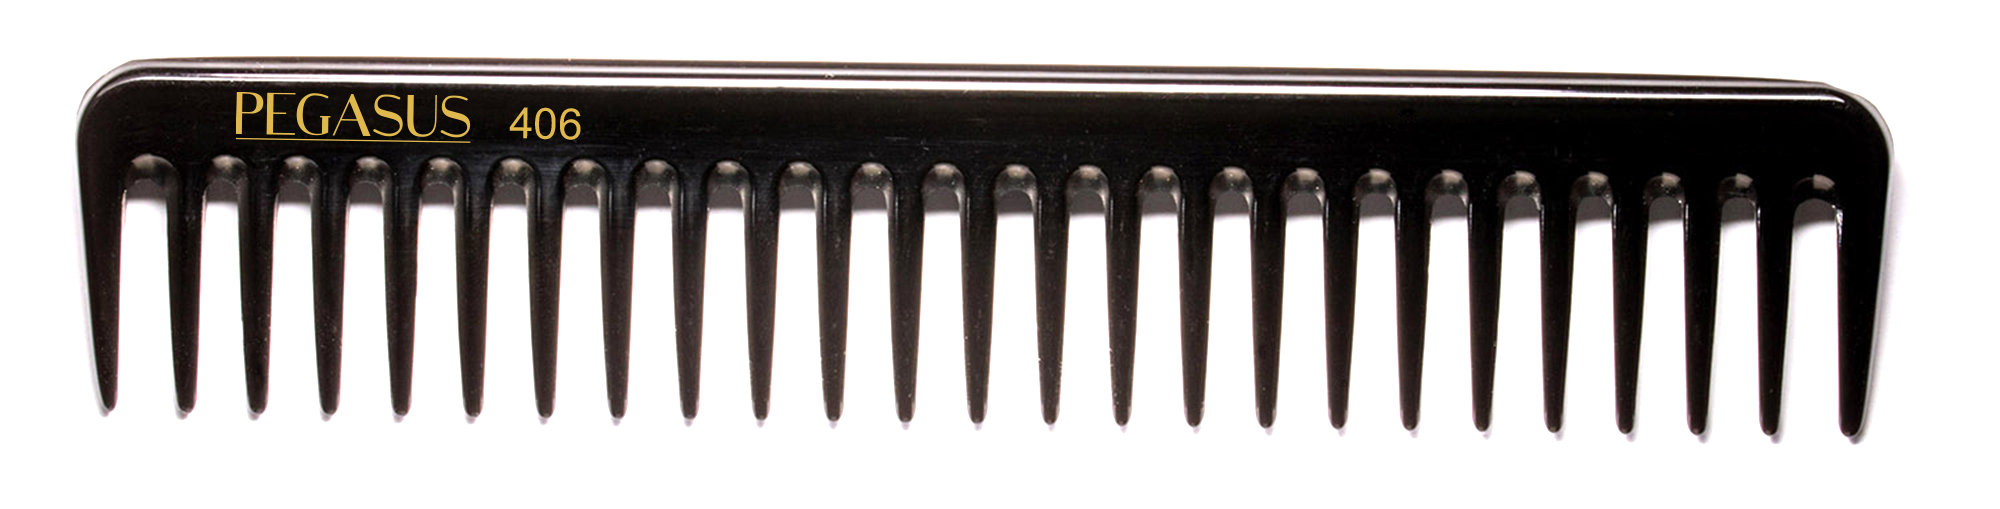 No. 406 Pegasus Hard Rubber Combs - Krest Combs